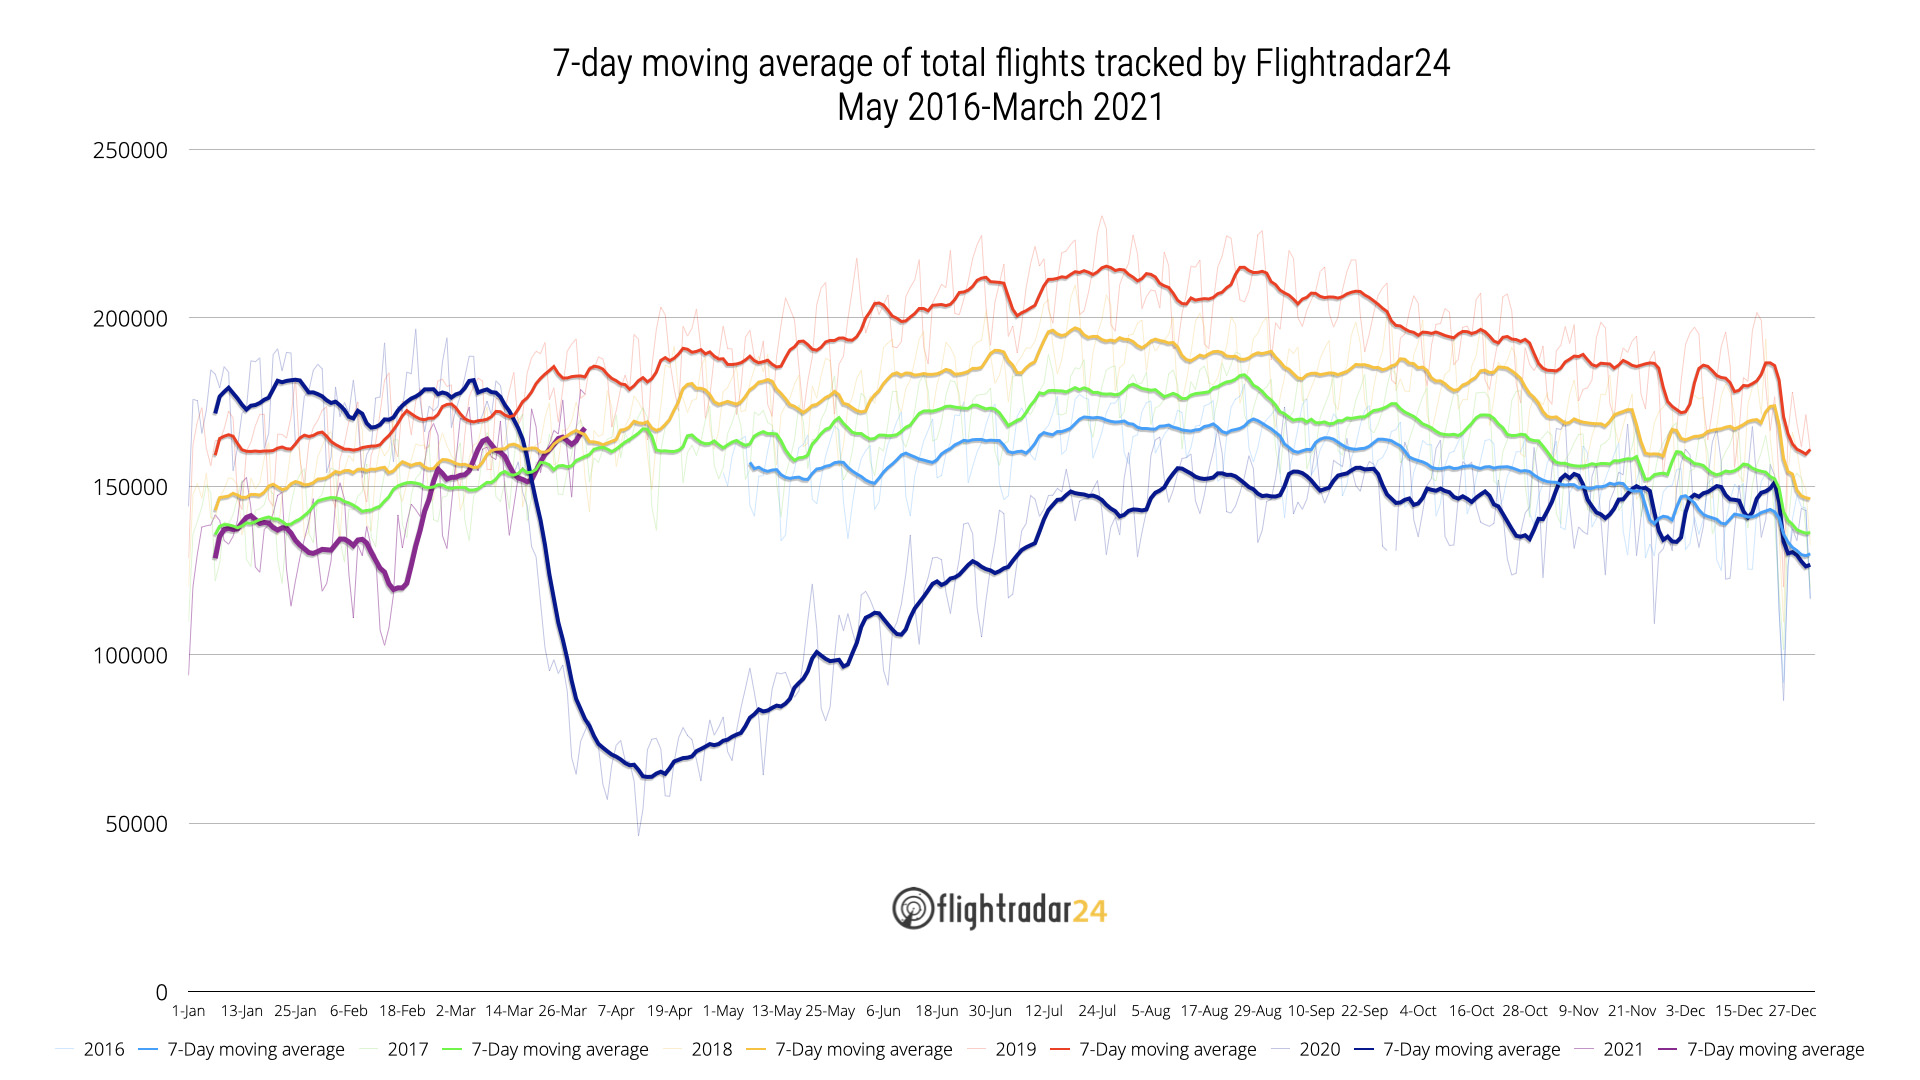 Chart showing Total Flights Tracked 2016-March 2021